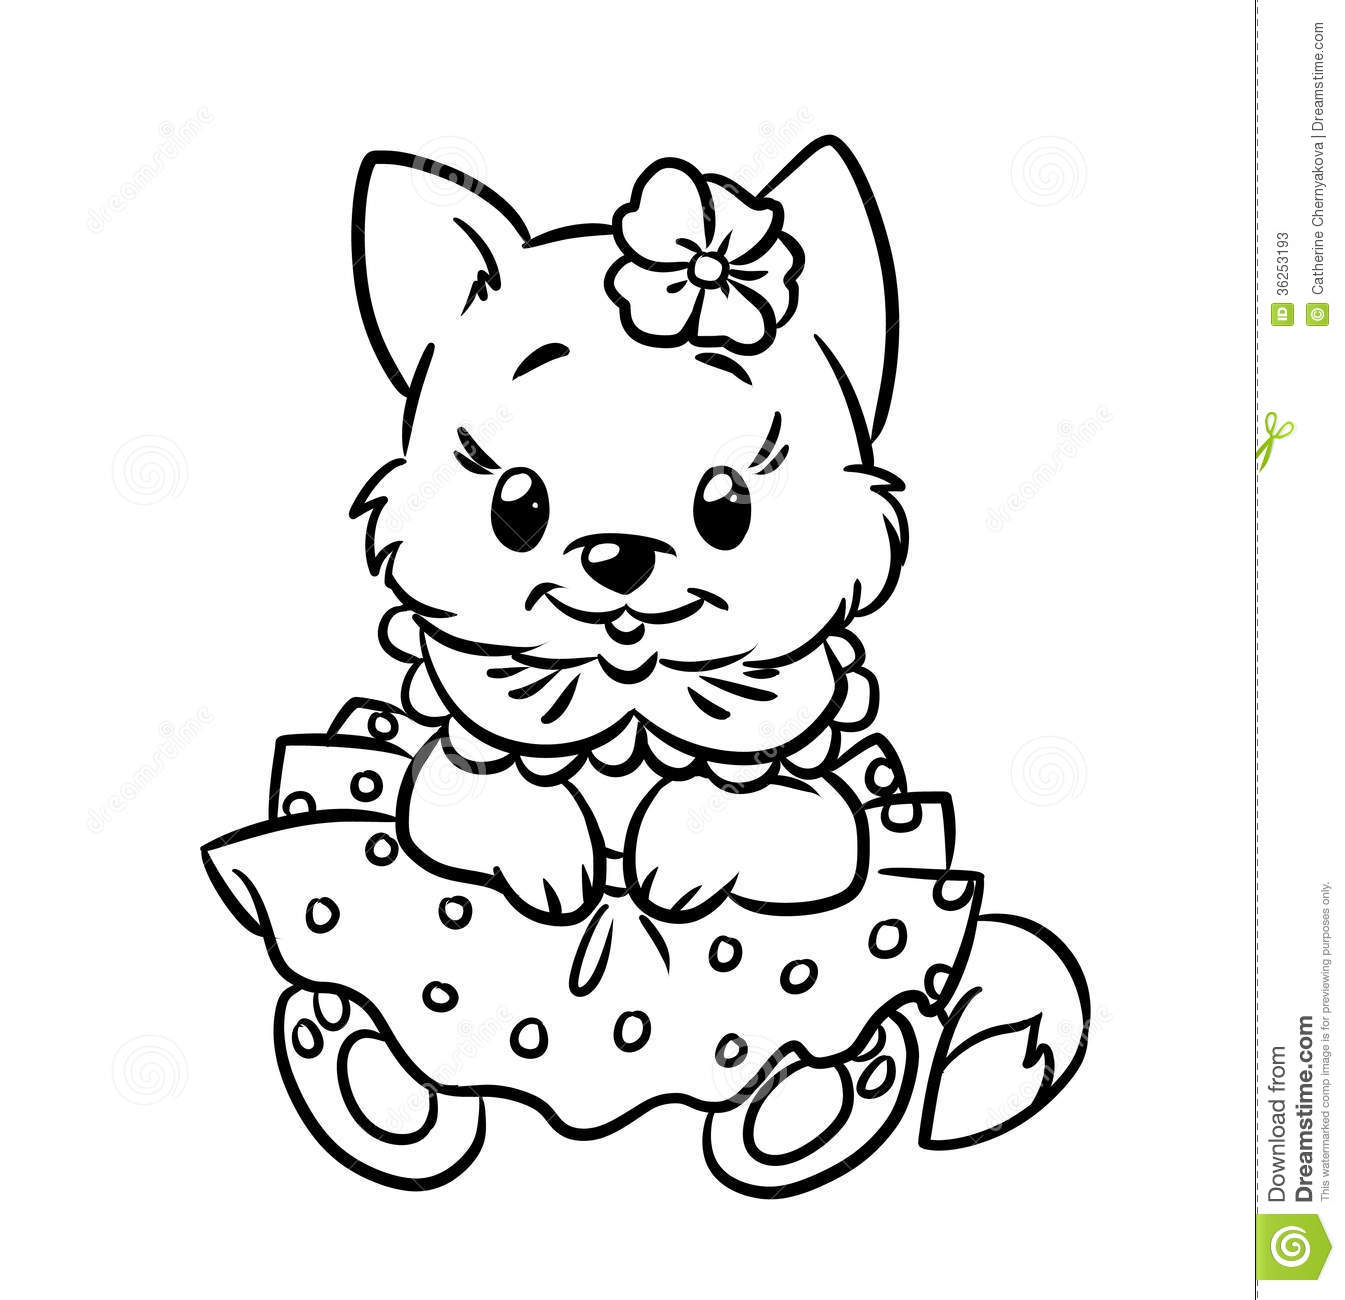 Baby Kitten Coloring Pages Stock Photos Image 36253193